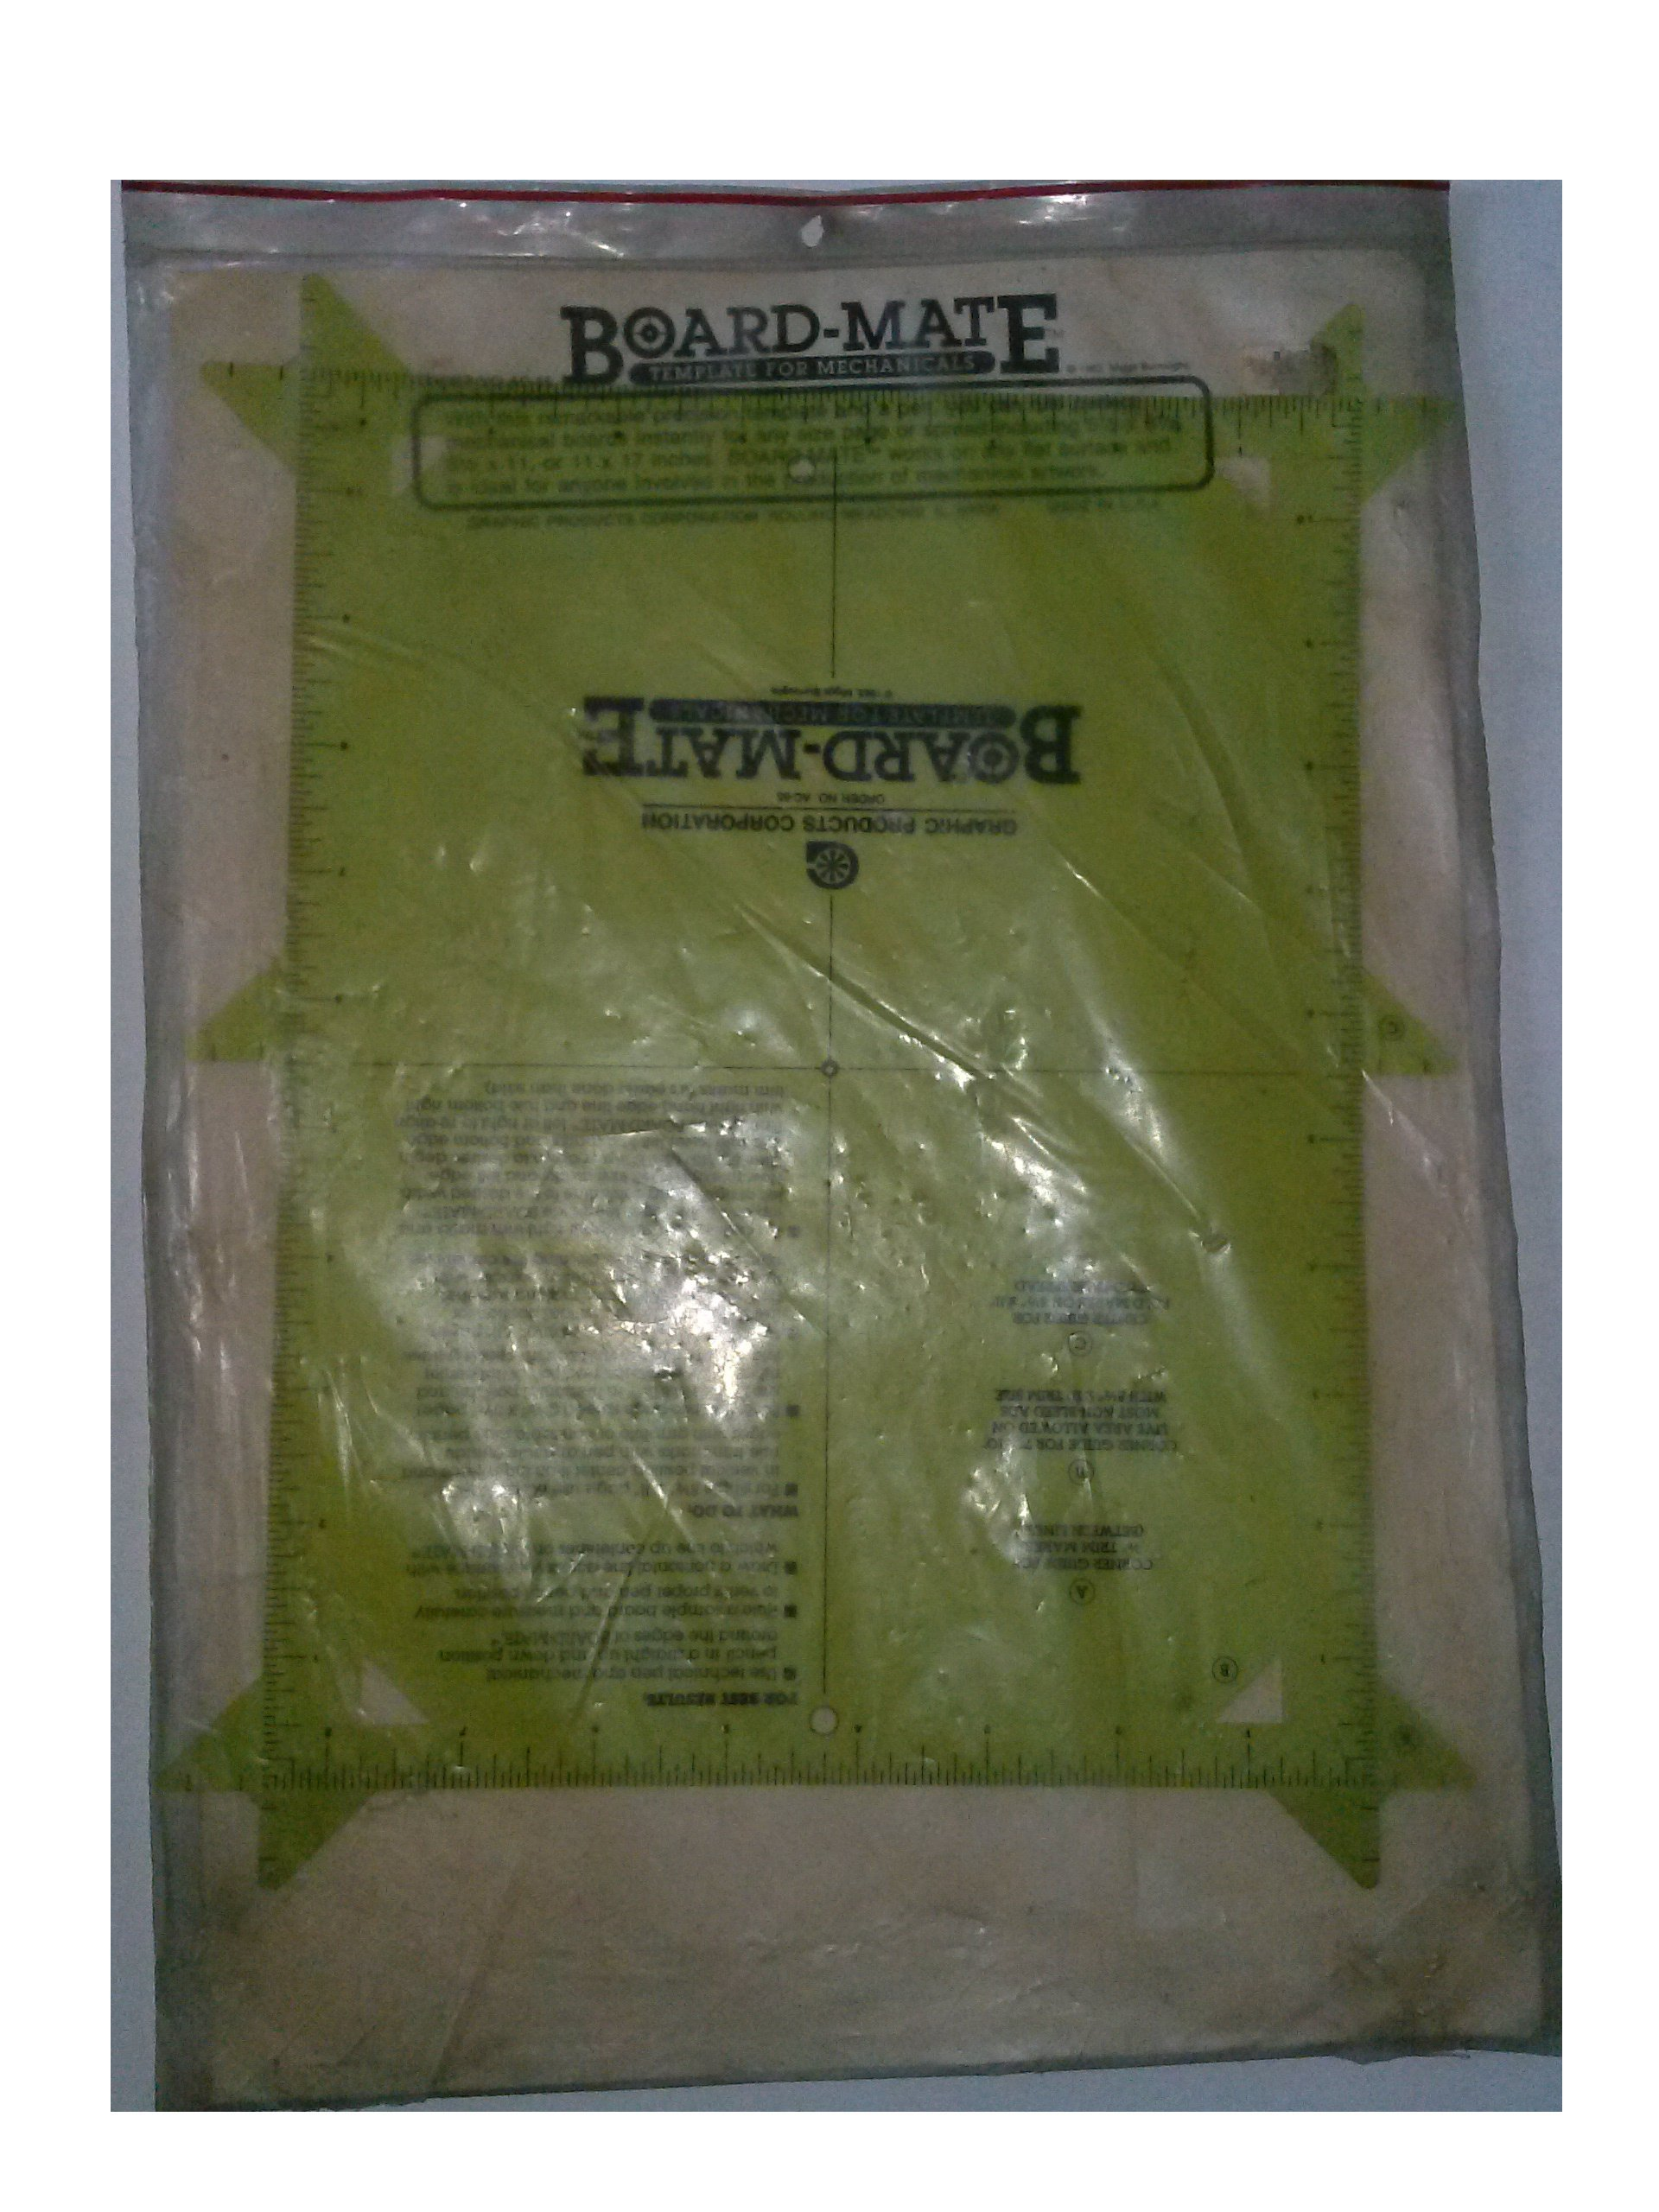 Graphics Product Corp. AC-65 Board-Mate Template for Mechanicals Made in USA by Graphics Product Corp (Image #1)